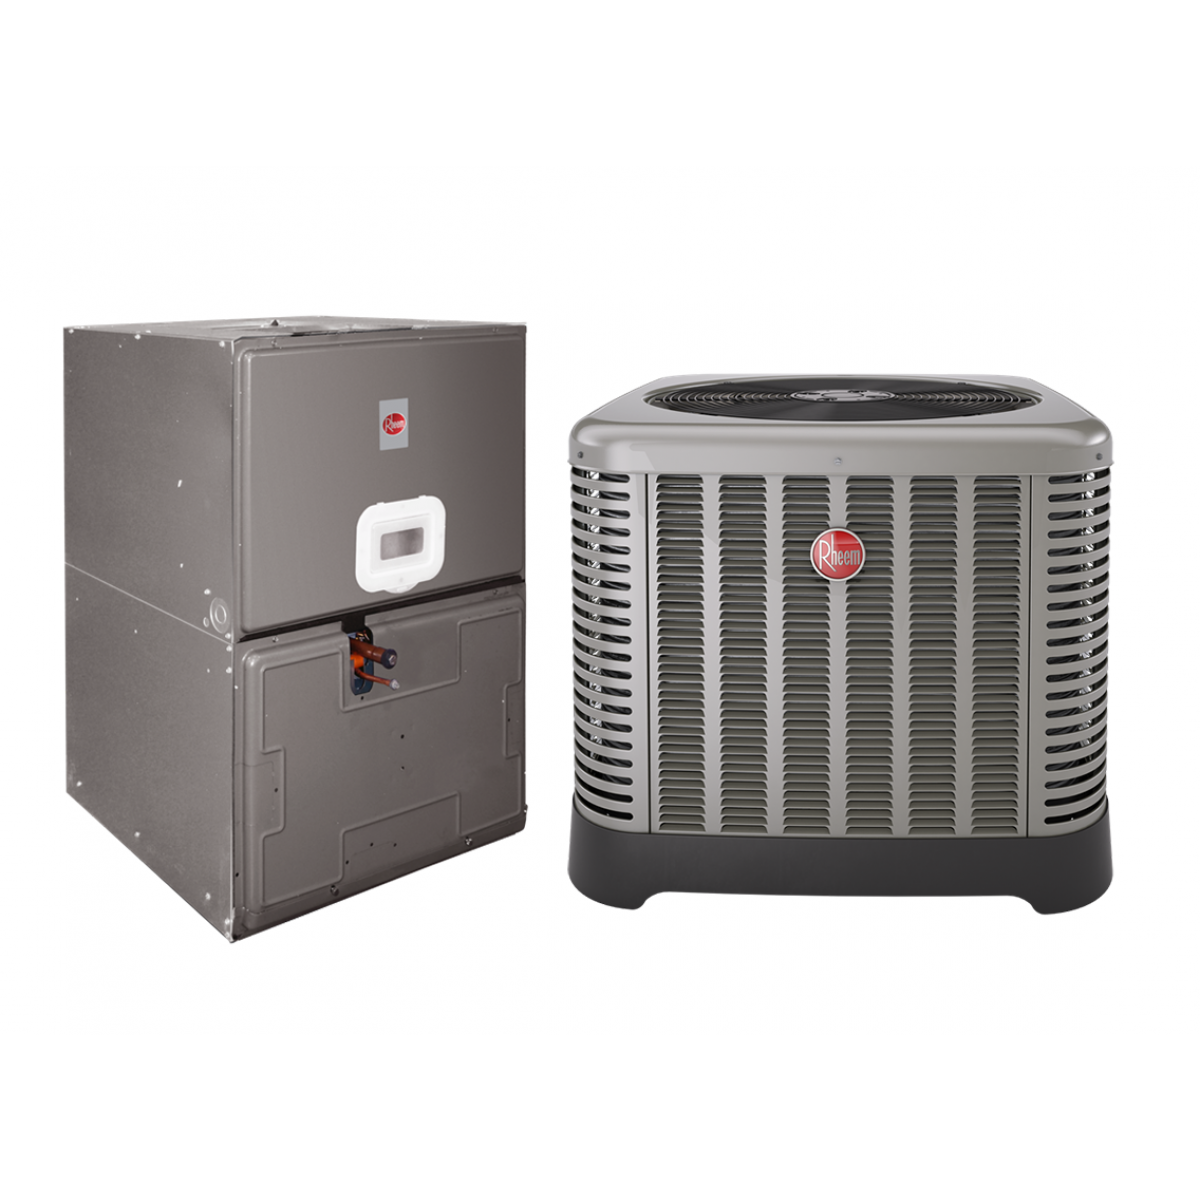 #9D312E Rheem 2.0 Ton 14 SEER Electric Heat Split System With 5KW  Best 6623 Split System Ac Units photos with 1200x1200 px on helpvideos.info - Air Conditioners, Air Coolers and more